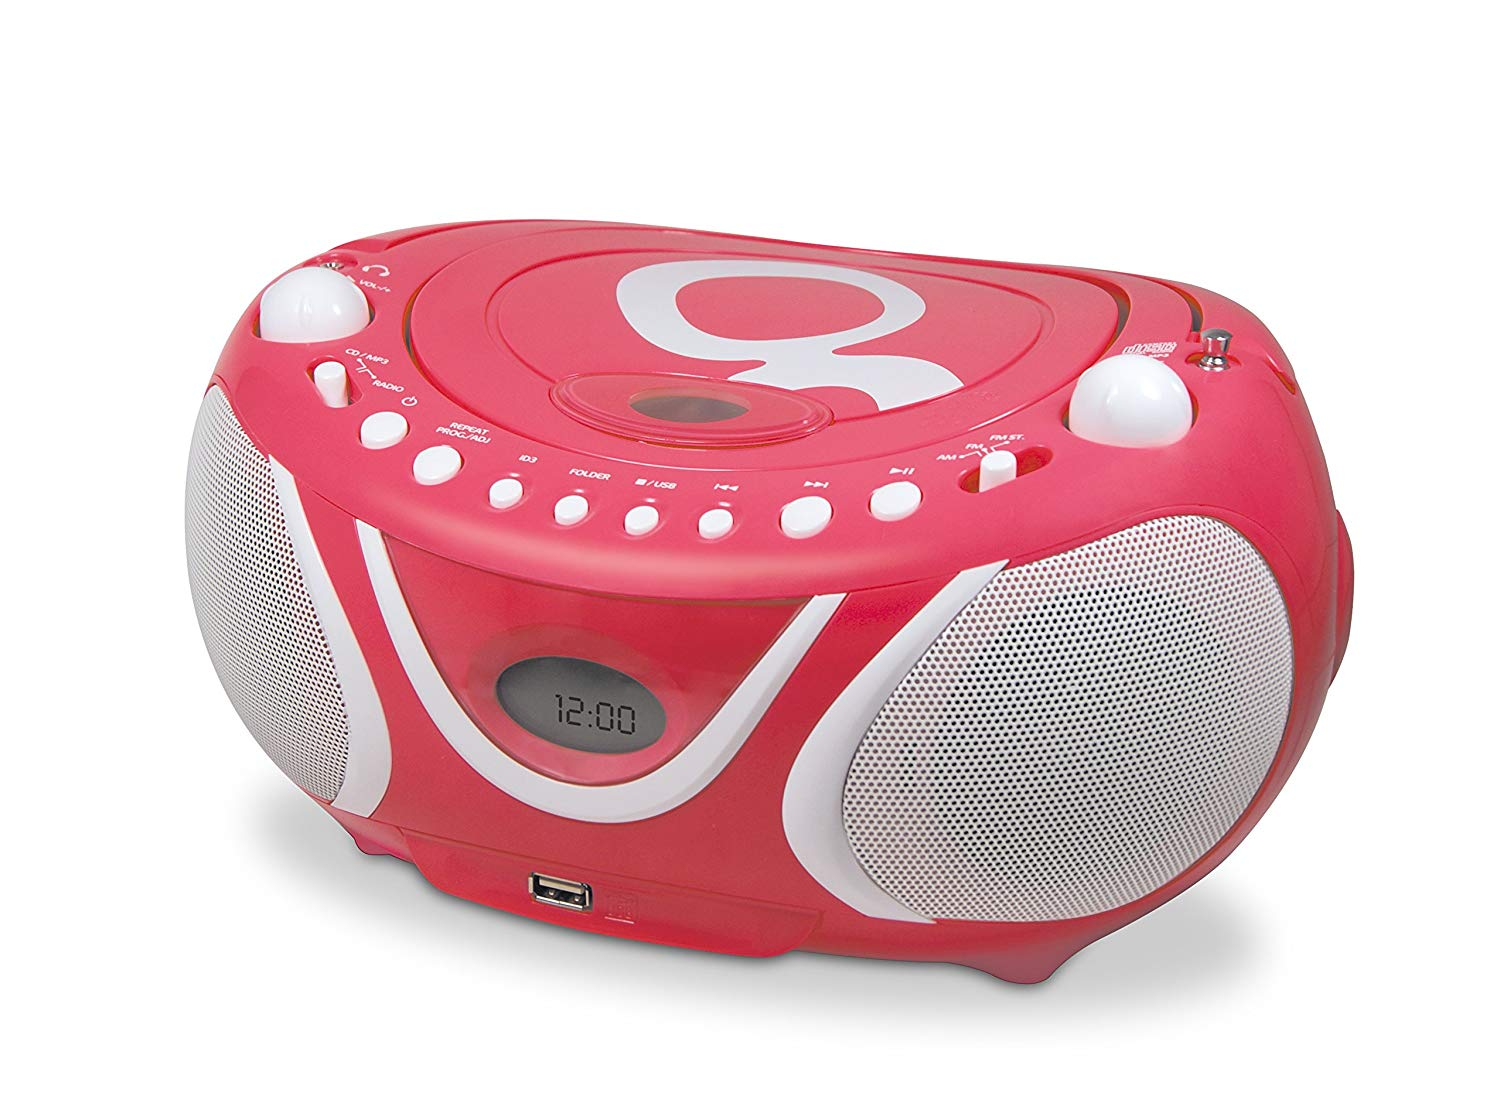 lecteur cd mp3 usb portable